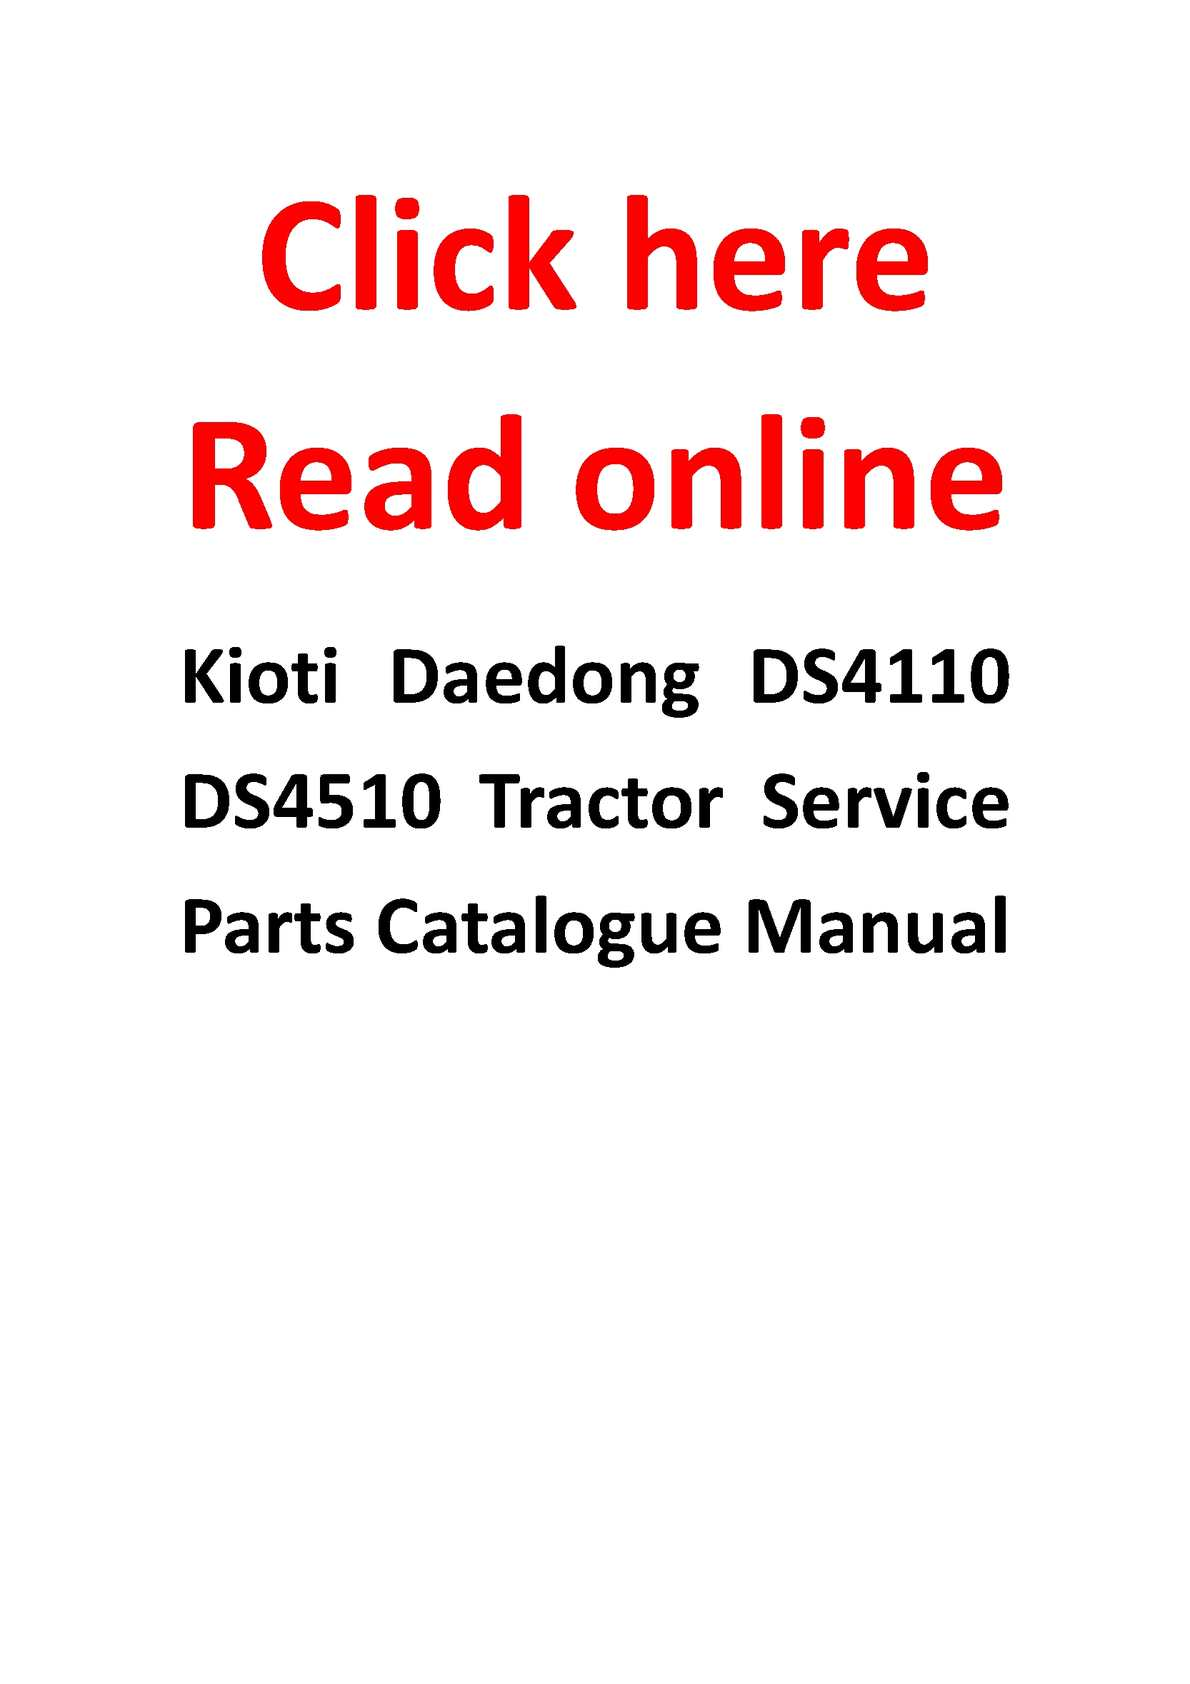 p1 calam�o kioti daedong ds4110 ds4510 tractor service parts Kioti Tractor Wiring Diagrams at reclaimingppi.co